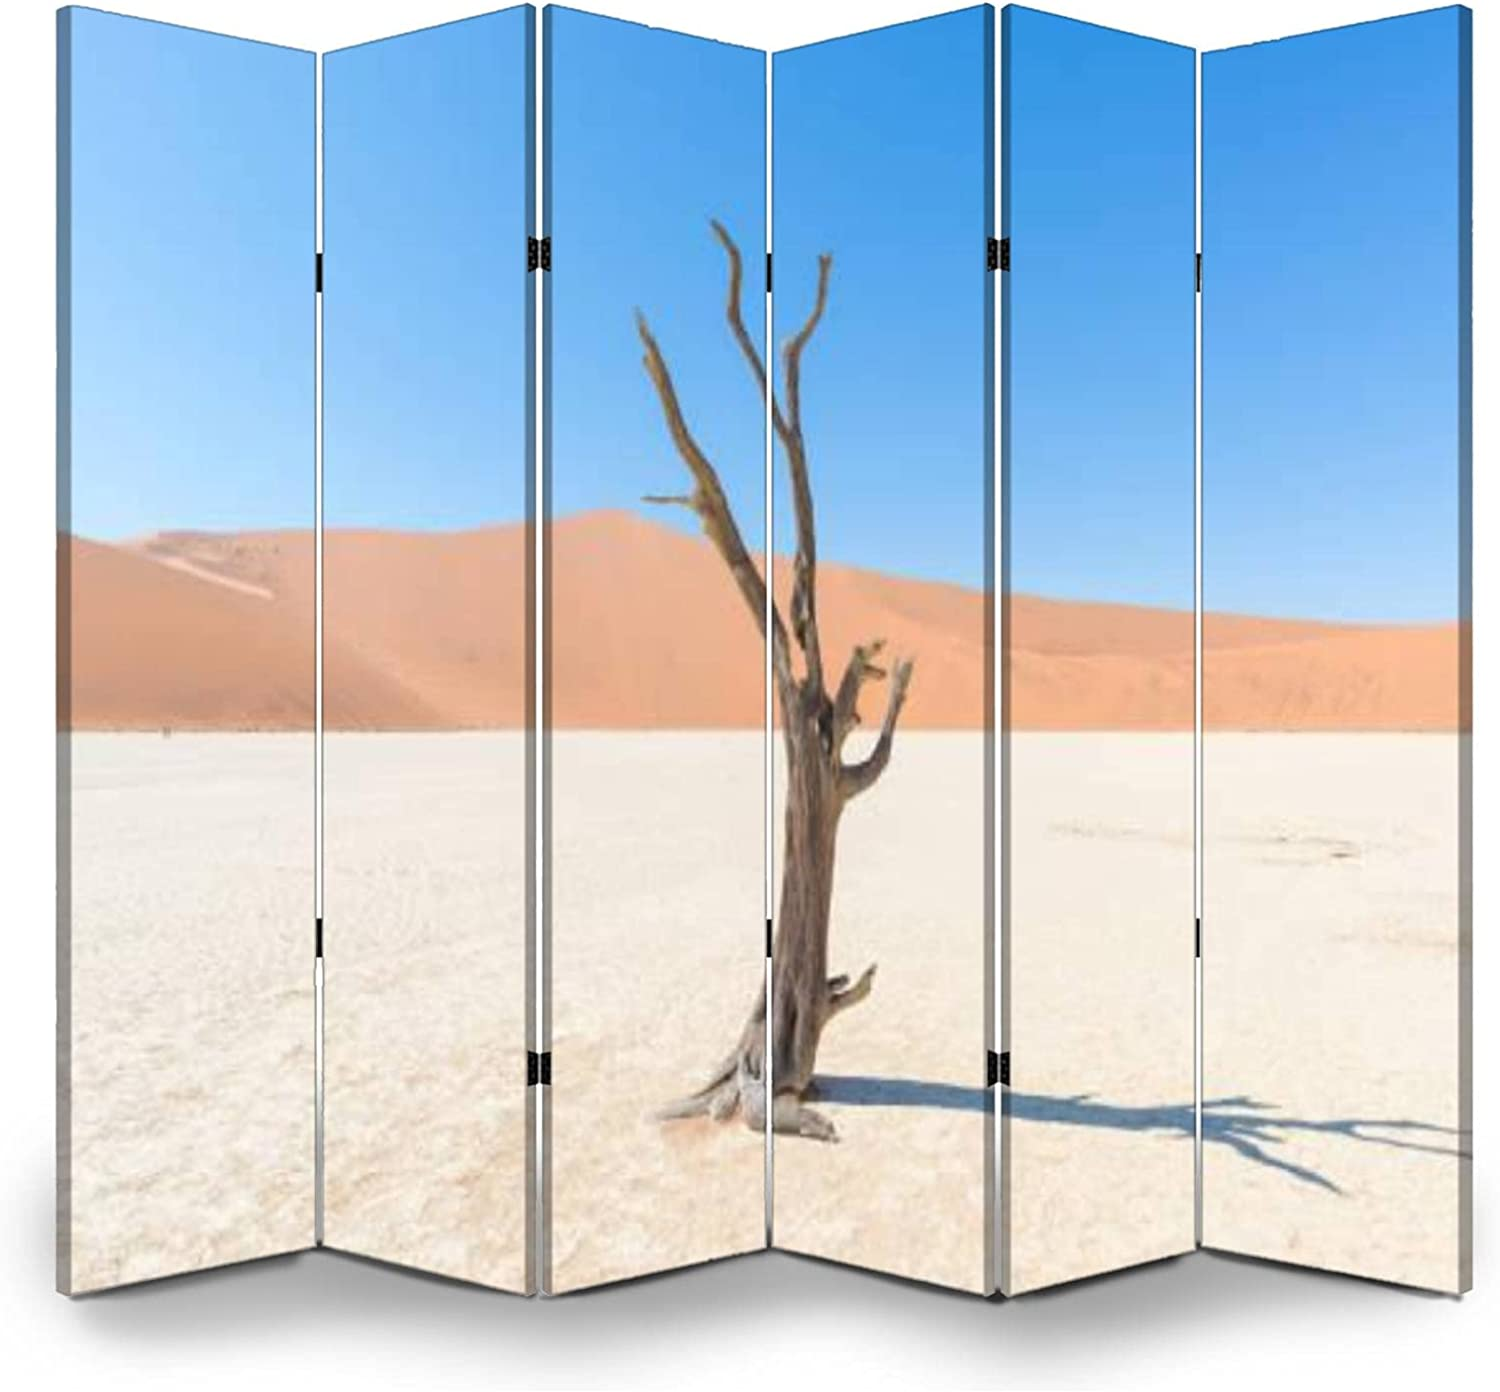 In a popularity Canvas Folding Screen The Scenic and Deadvlei Sossusvlei Pr Great interest Room